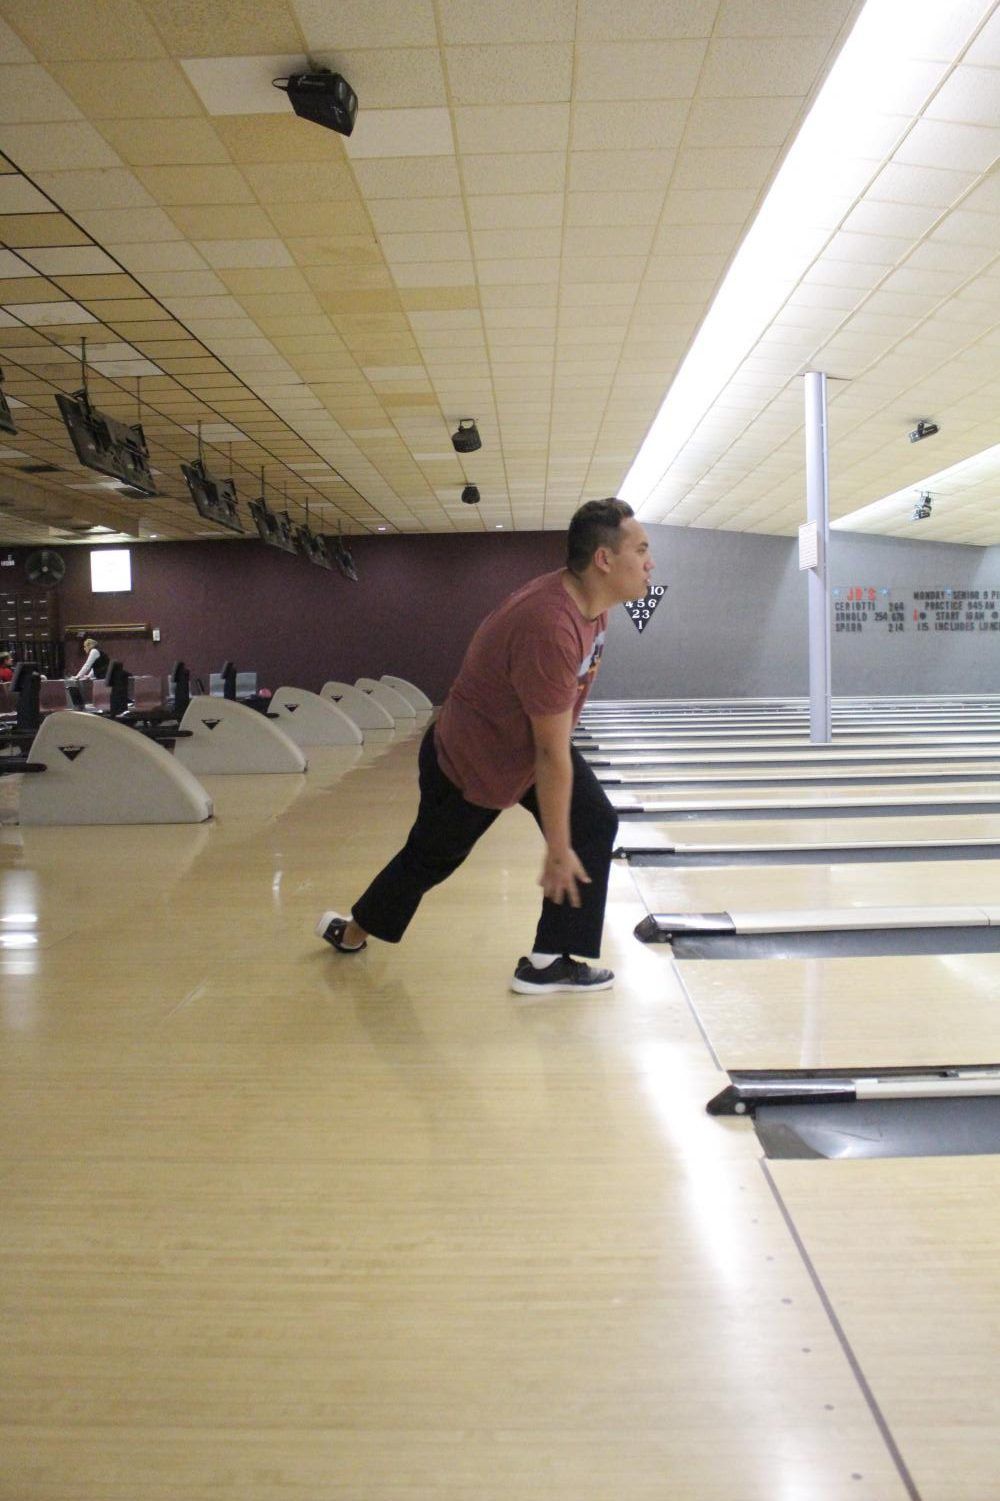 During+bowling+practice%2C+Noah+Herschel%2C+senior%2C+holds+his+pose+after+bowling+a+strike+Feb.+19.